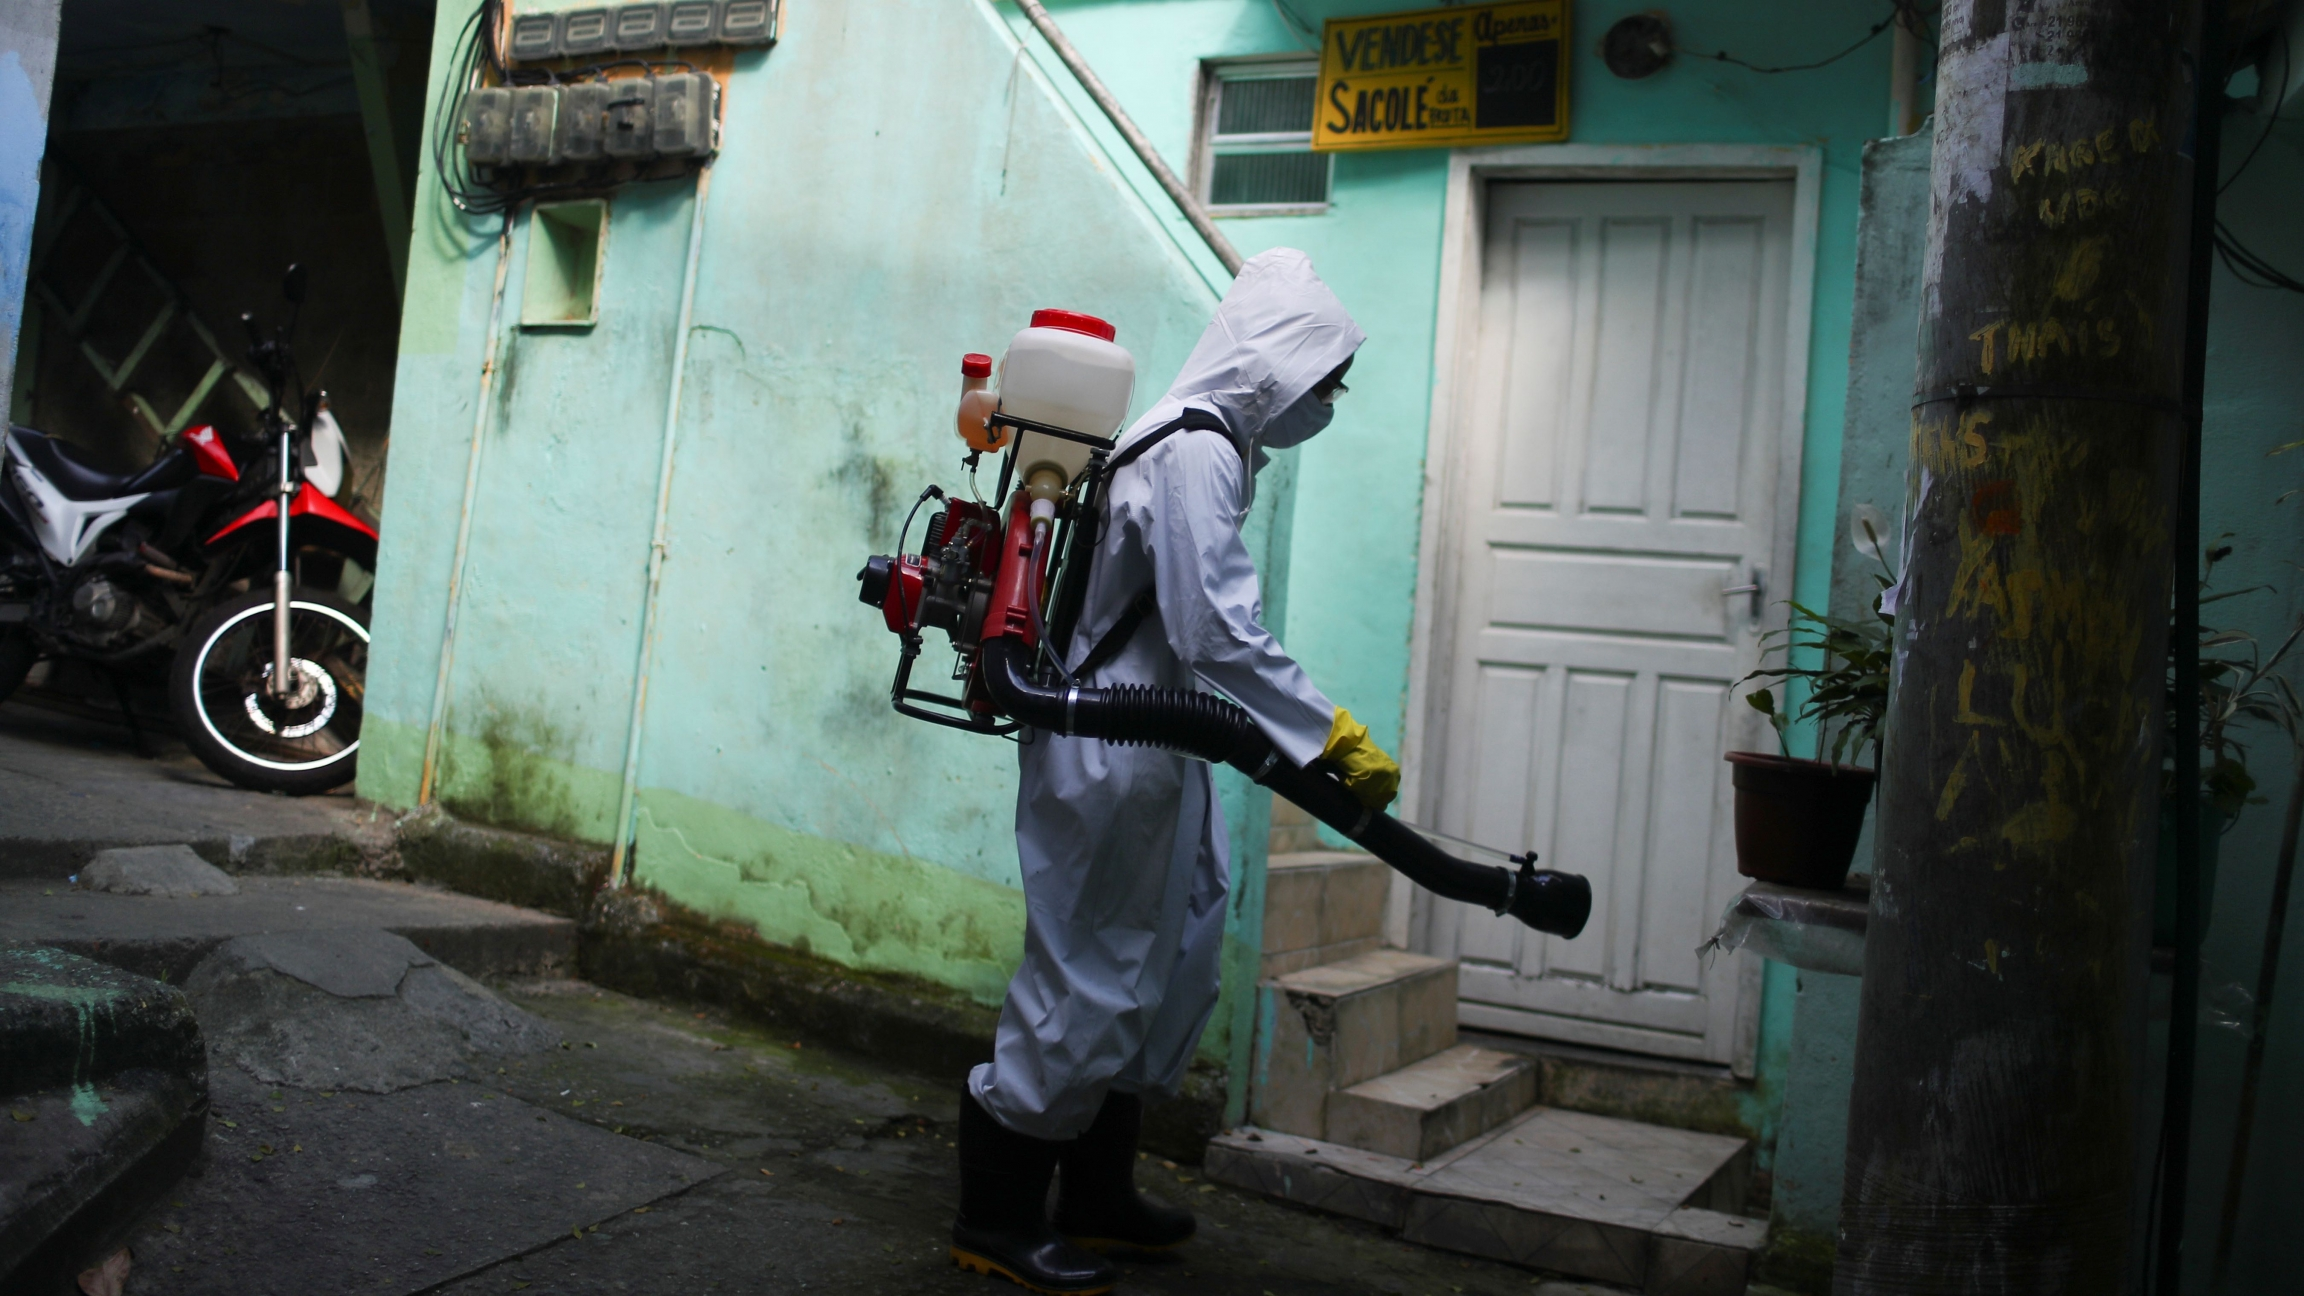 A worker disinfects the streets of the Vidigal slum, following the coronavirus disease (COVID-19) outbreak, in Rio de Janeiro, Brazil, April 24, 2020.